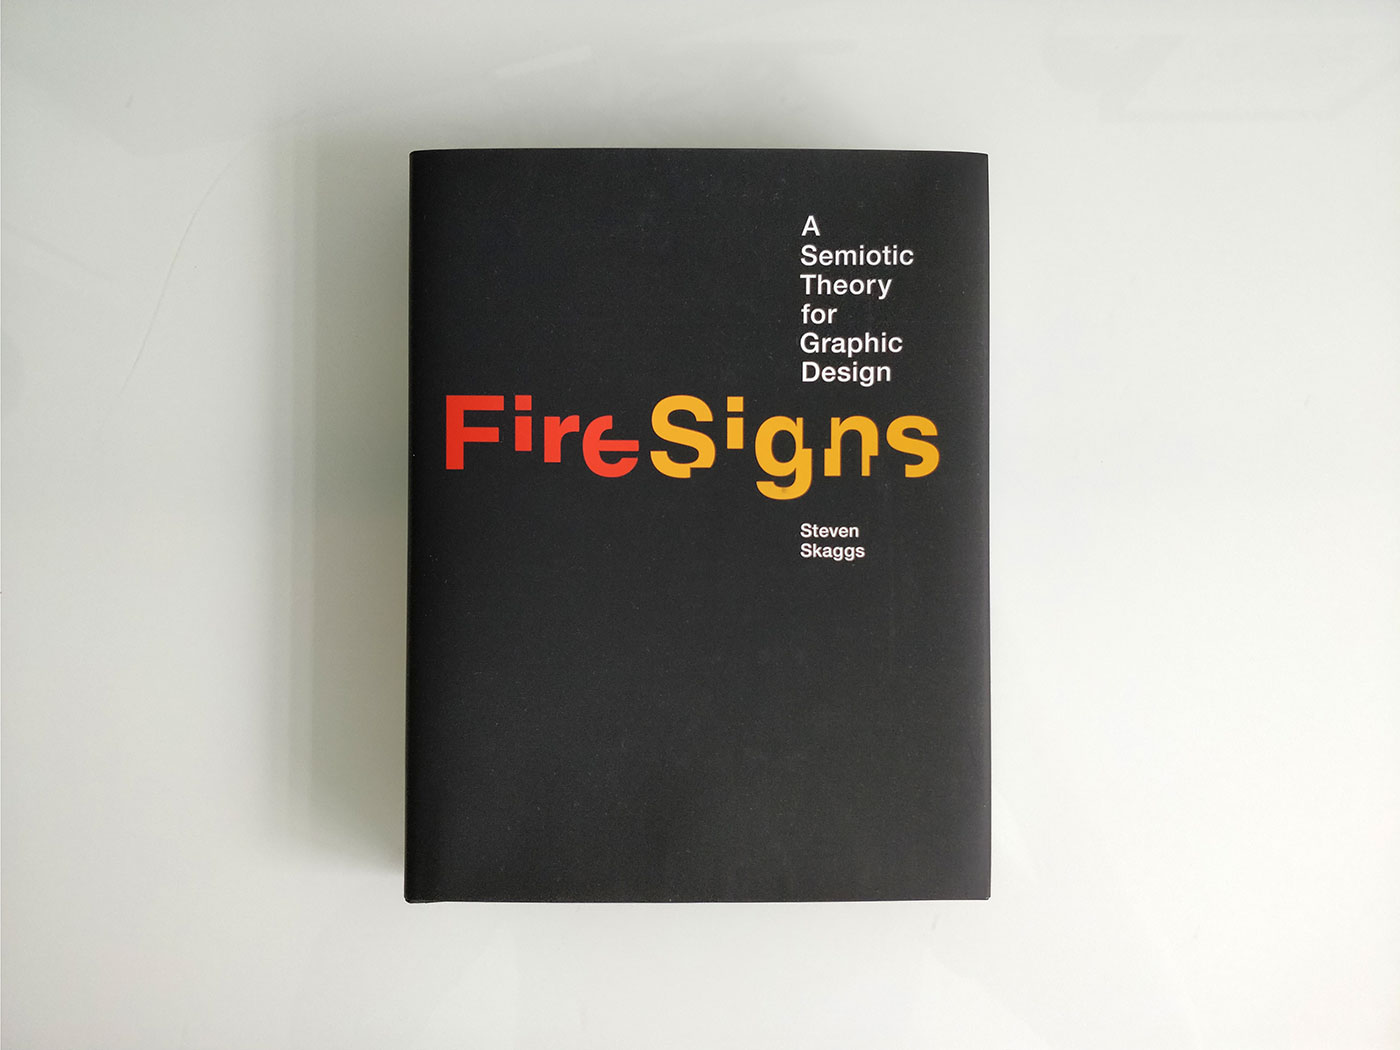 FireSigns book, Steven Skaggs